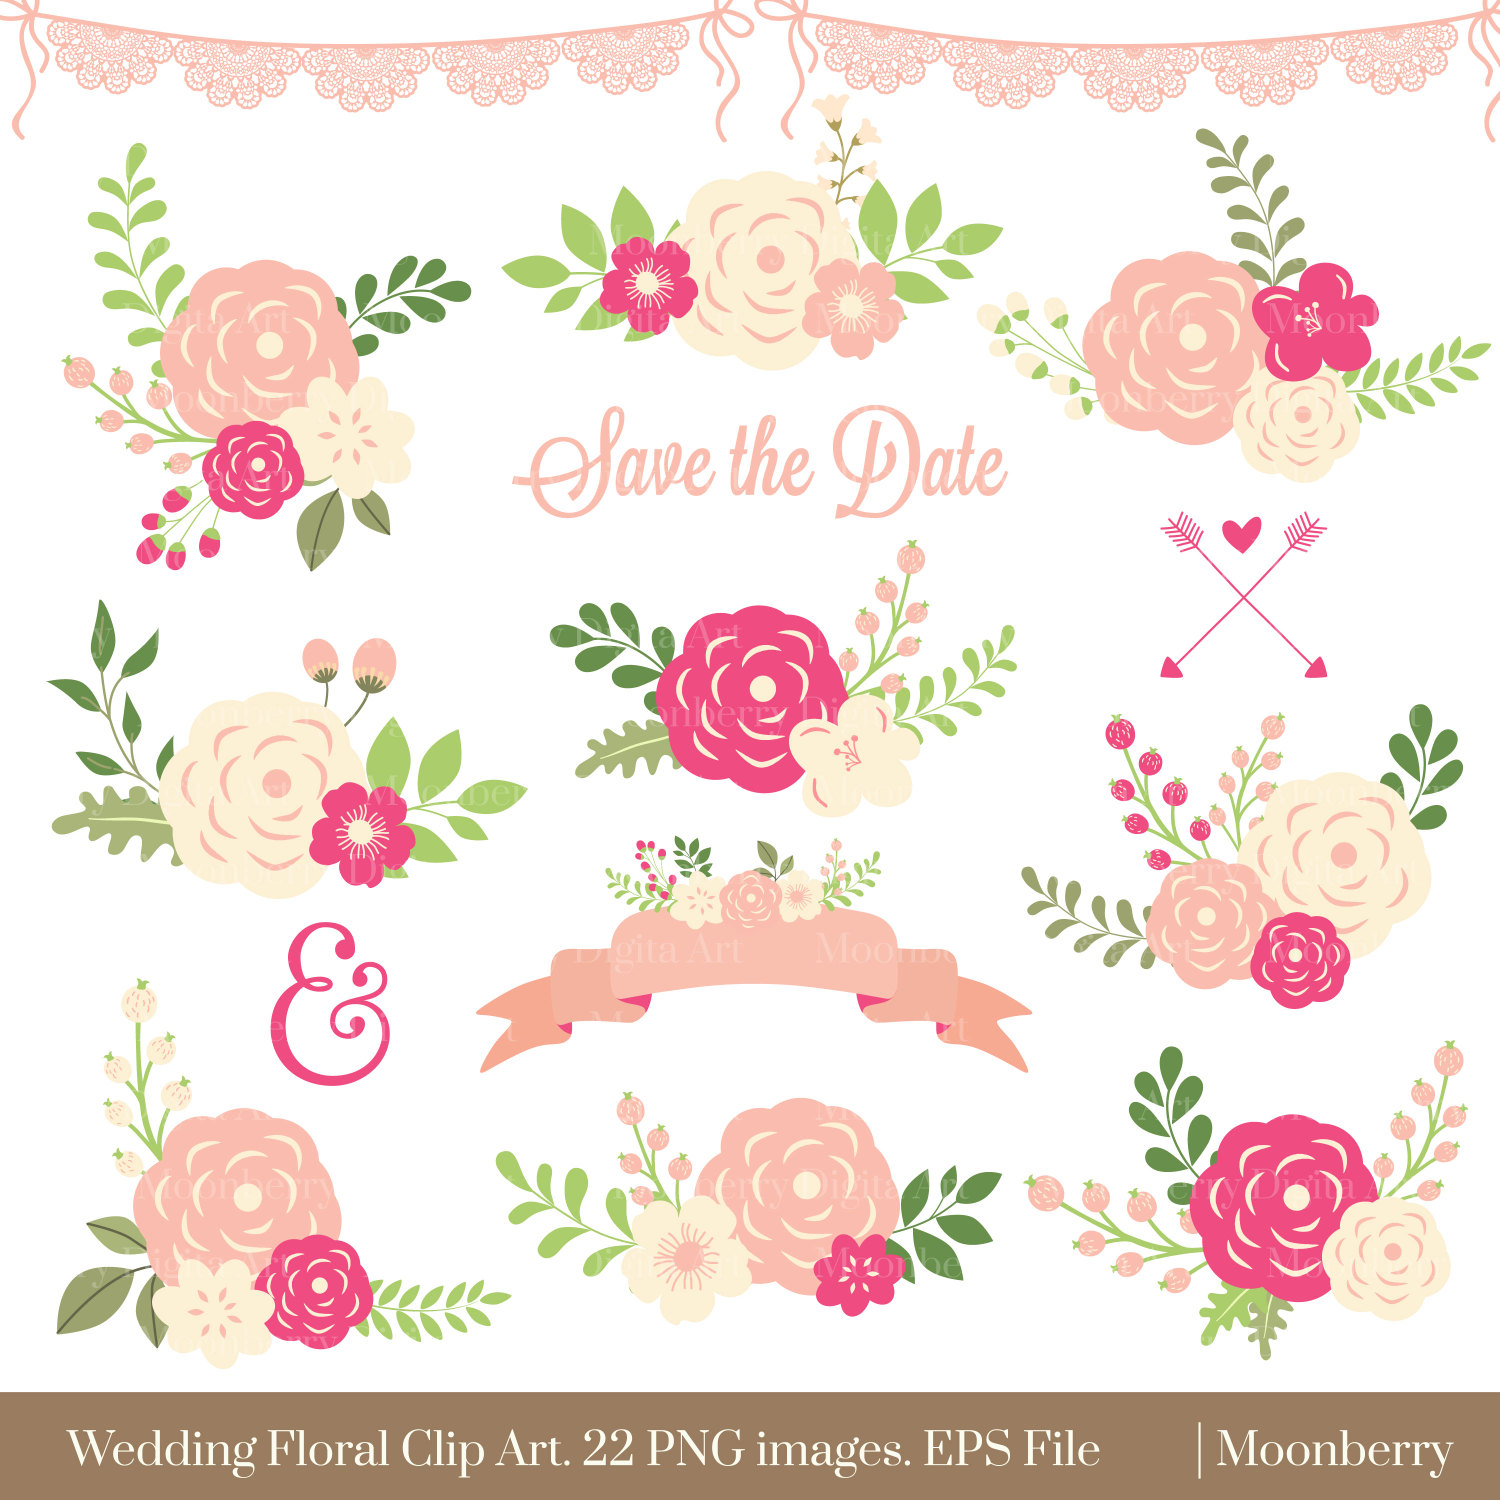 Rustic clipart wedding floral Posies SALE WEDDING File FLORAL